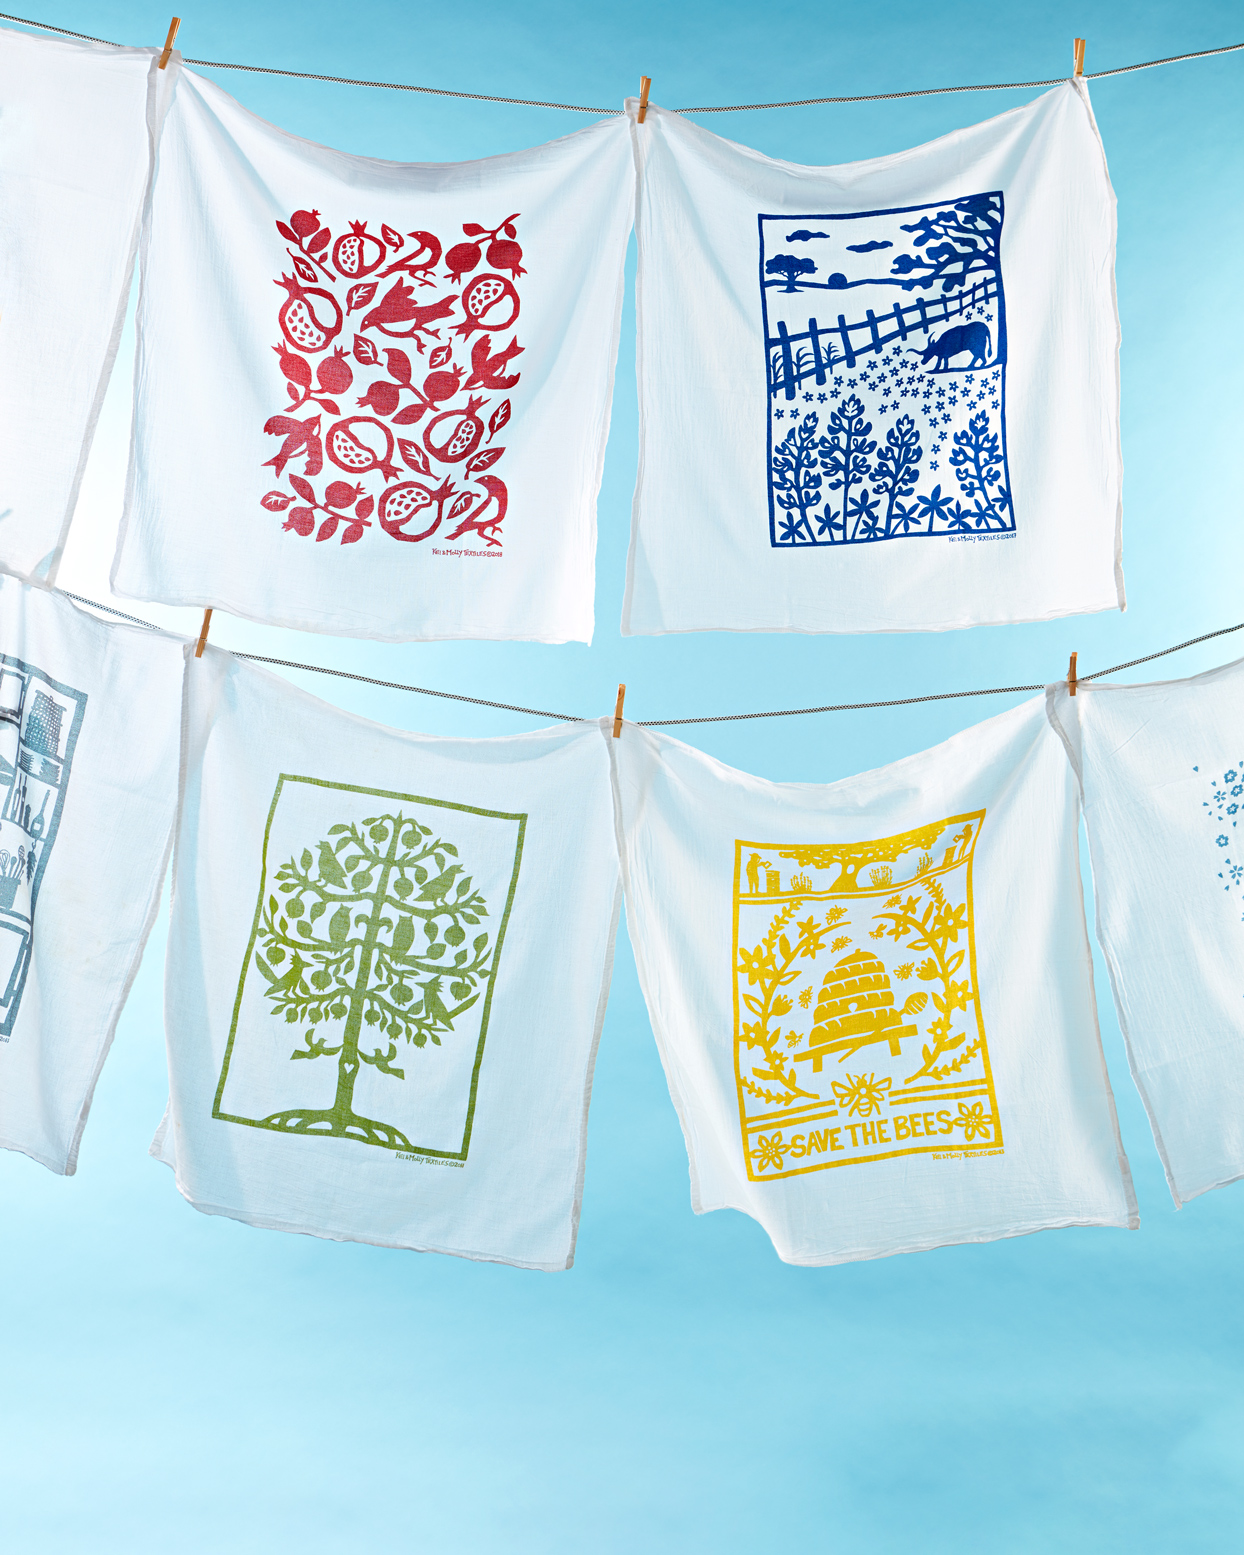 Kei & Molly Textiles towels